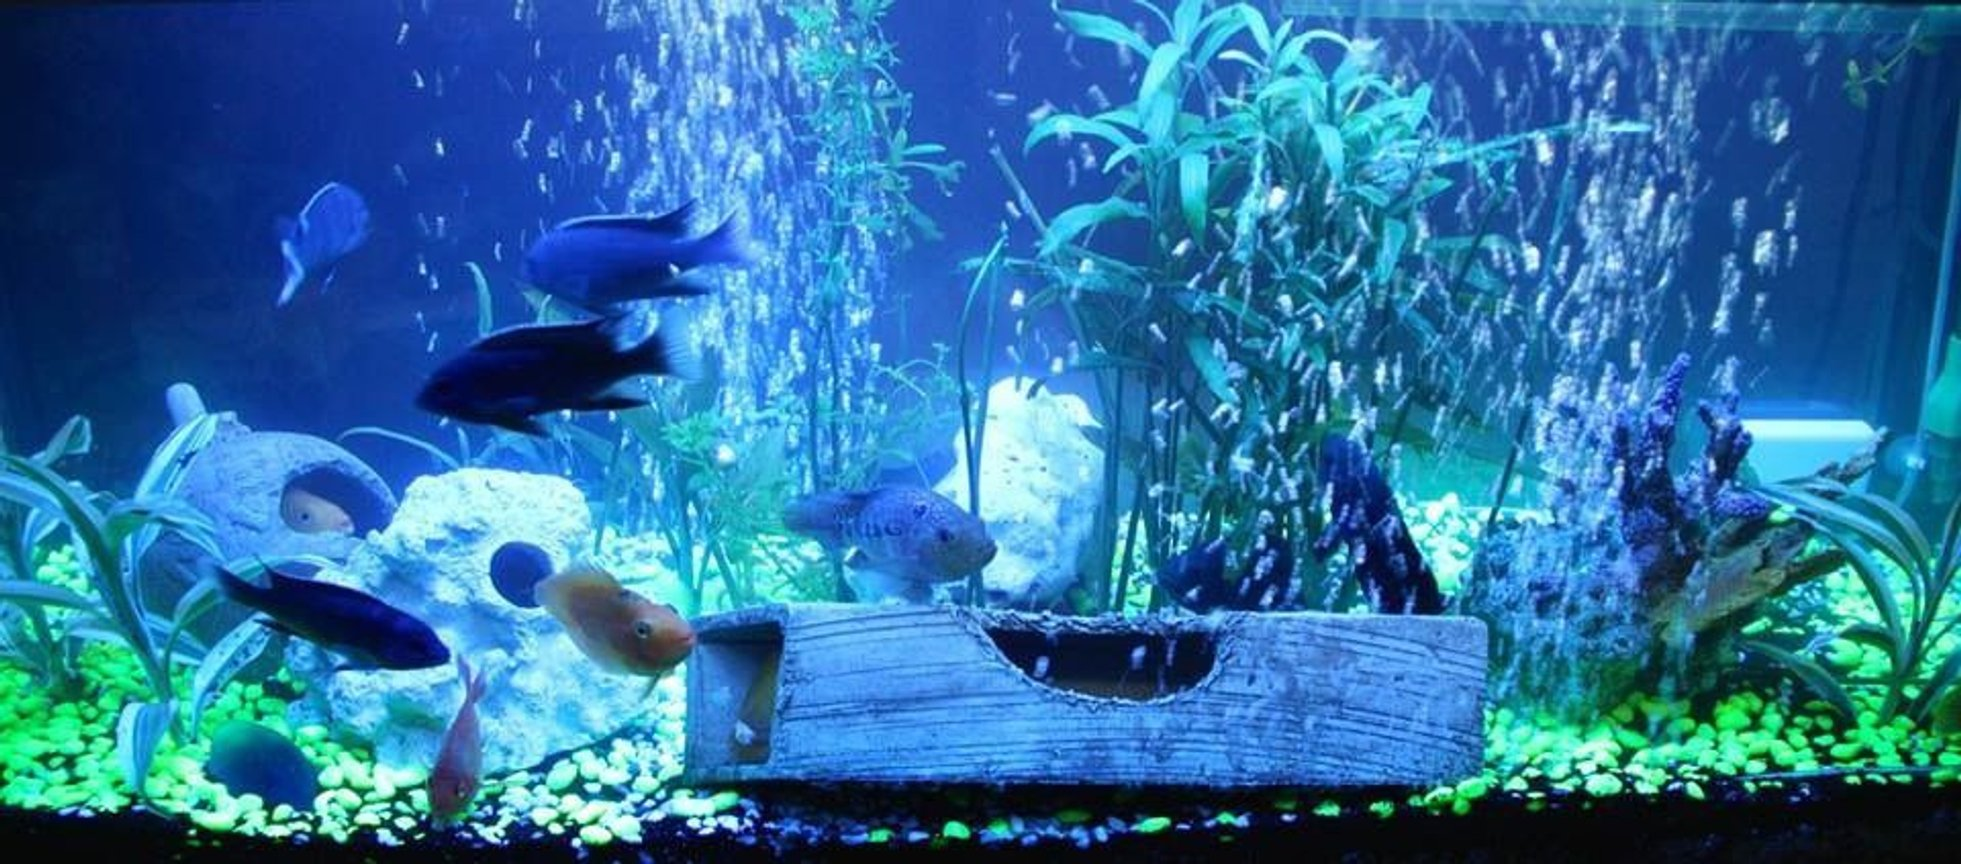 60 gallons freshwater fish tank (mostly fish and non-living decorations) - Happy 1st month!